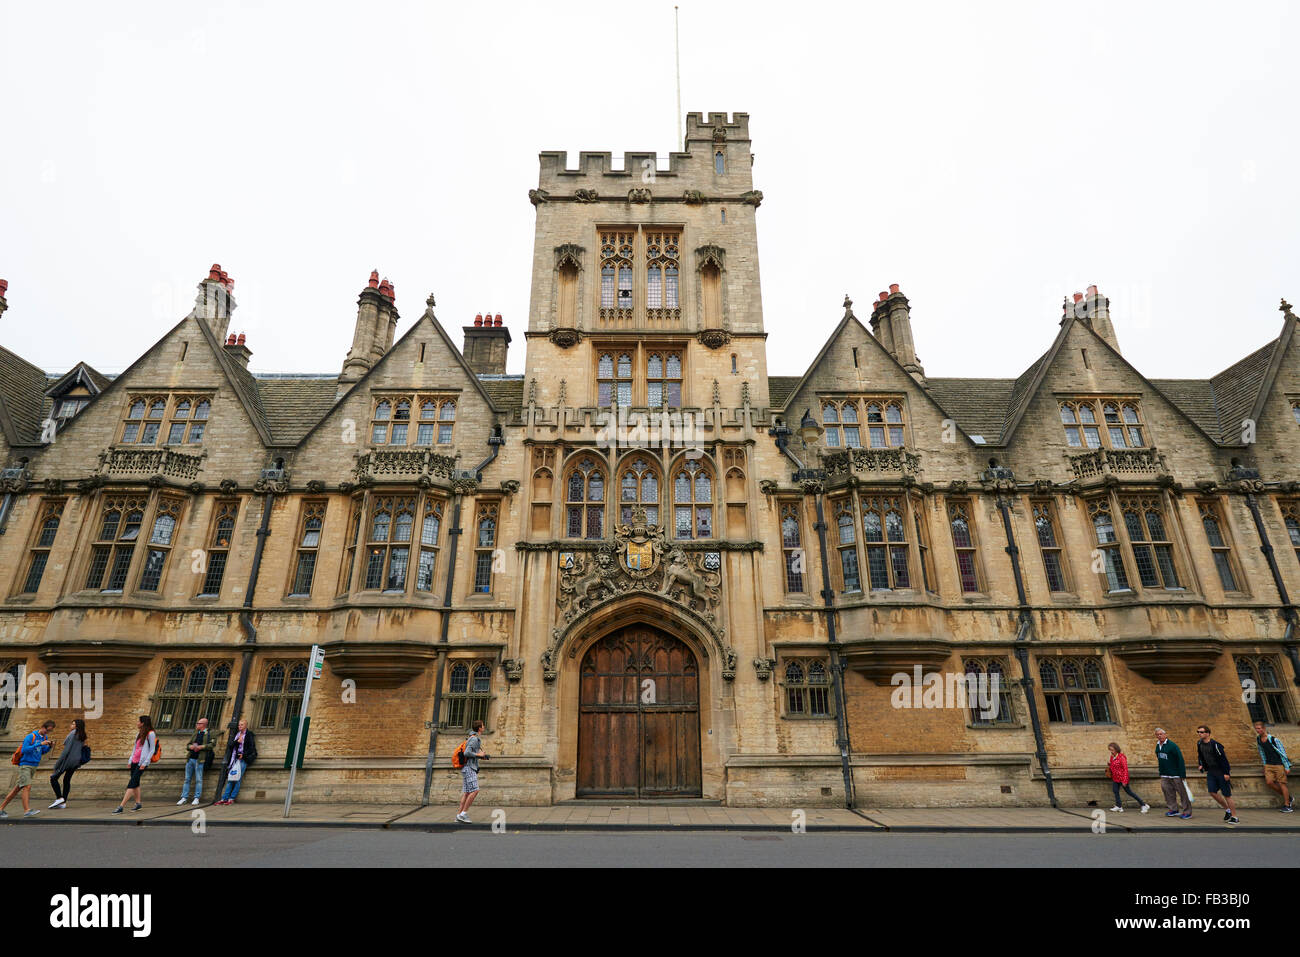 Brasenose College, High Street, Oxford, Oxfordshire, Great Britain, Europe - Stock Image